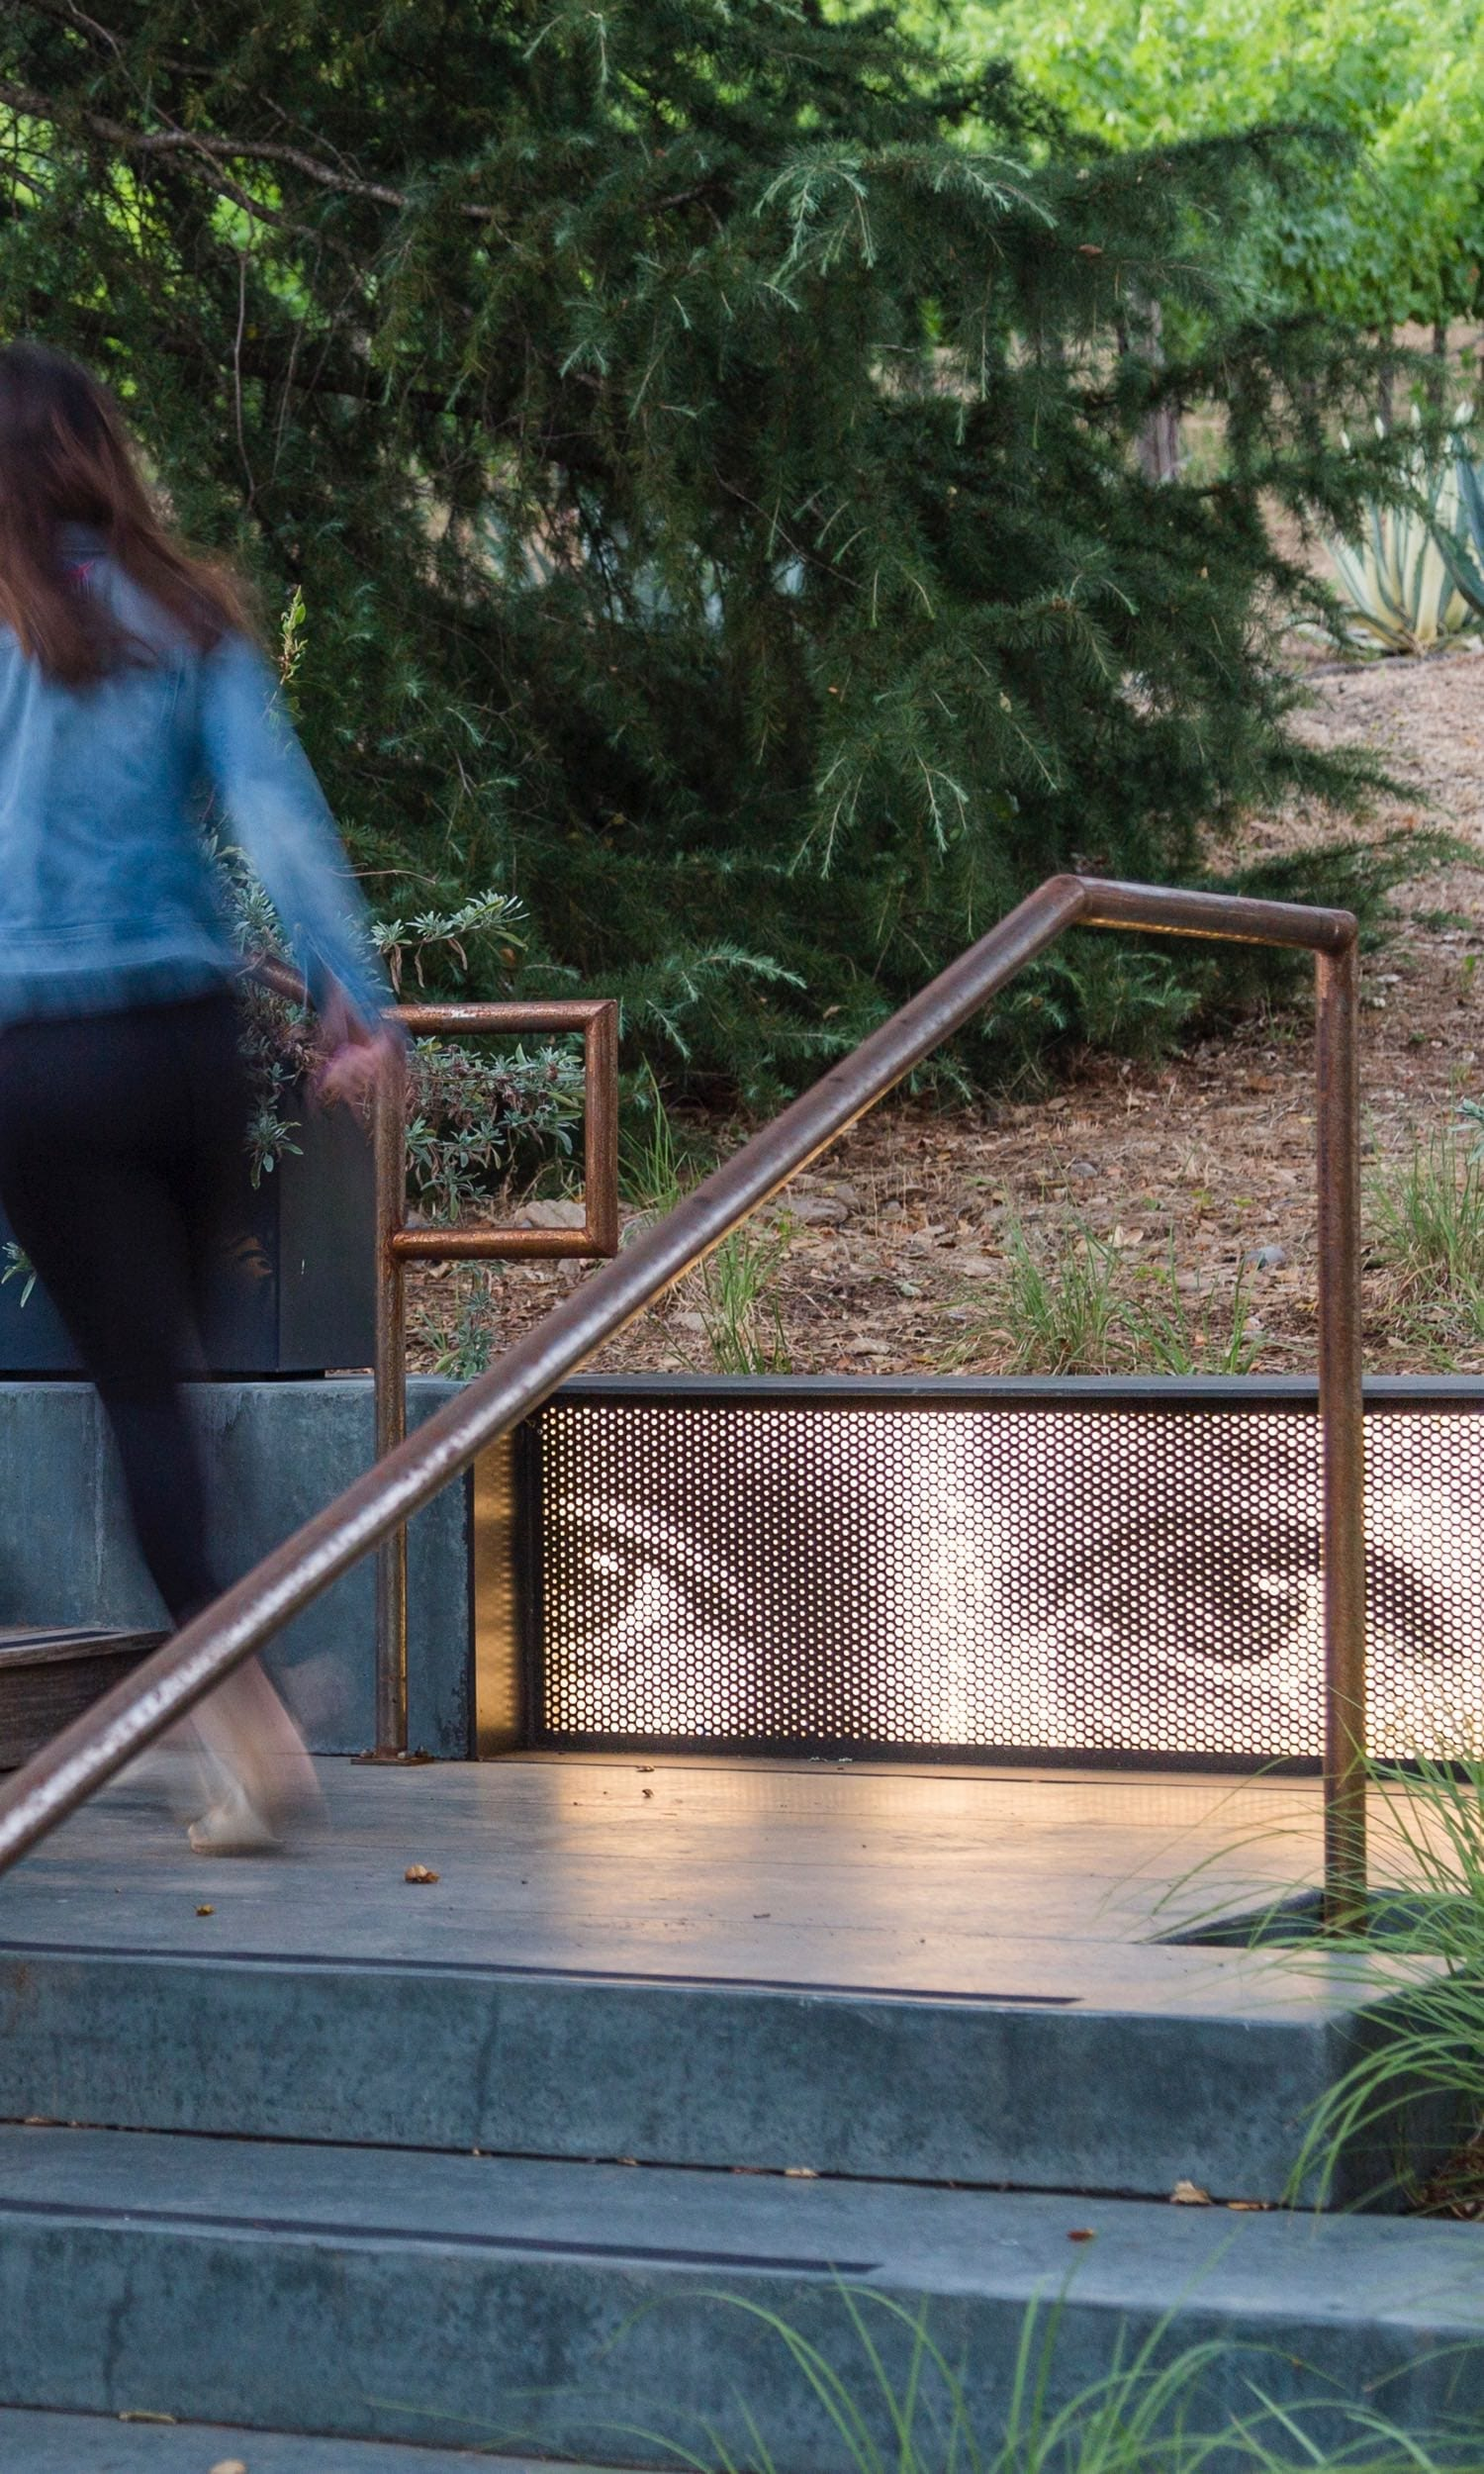 Backlit, finely perforated painted aluminum panel forms the front of a metal seat.